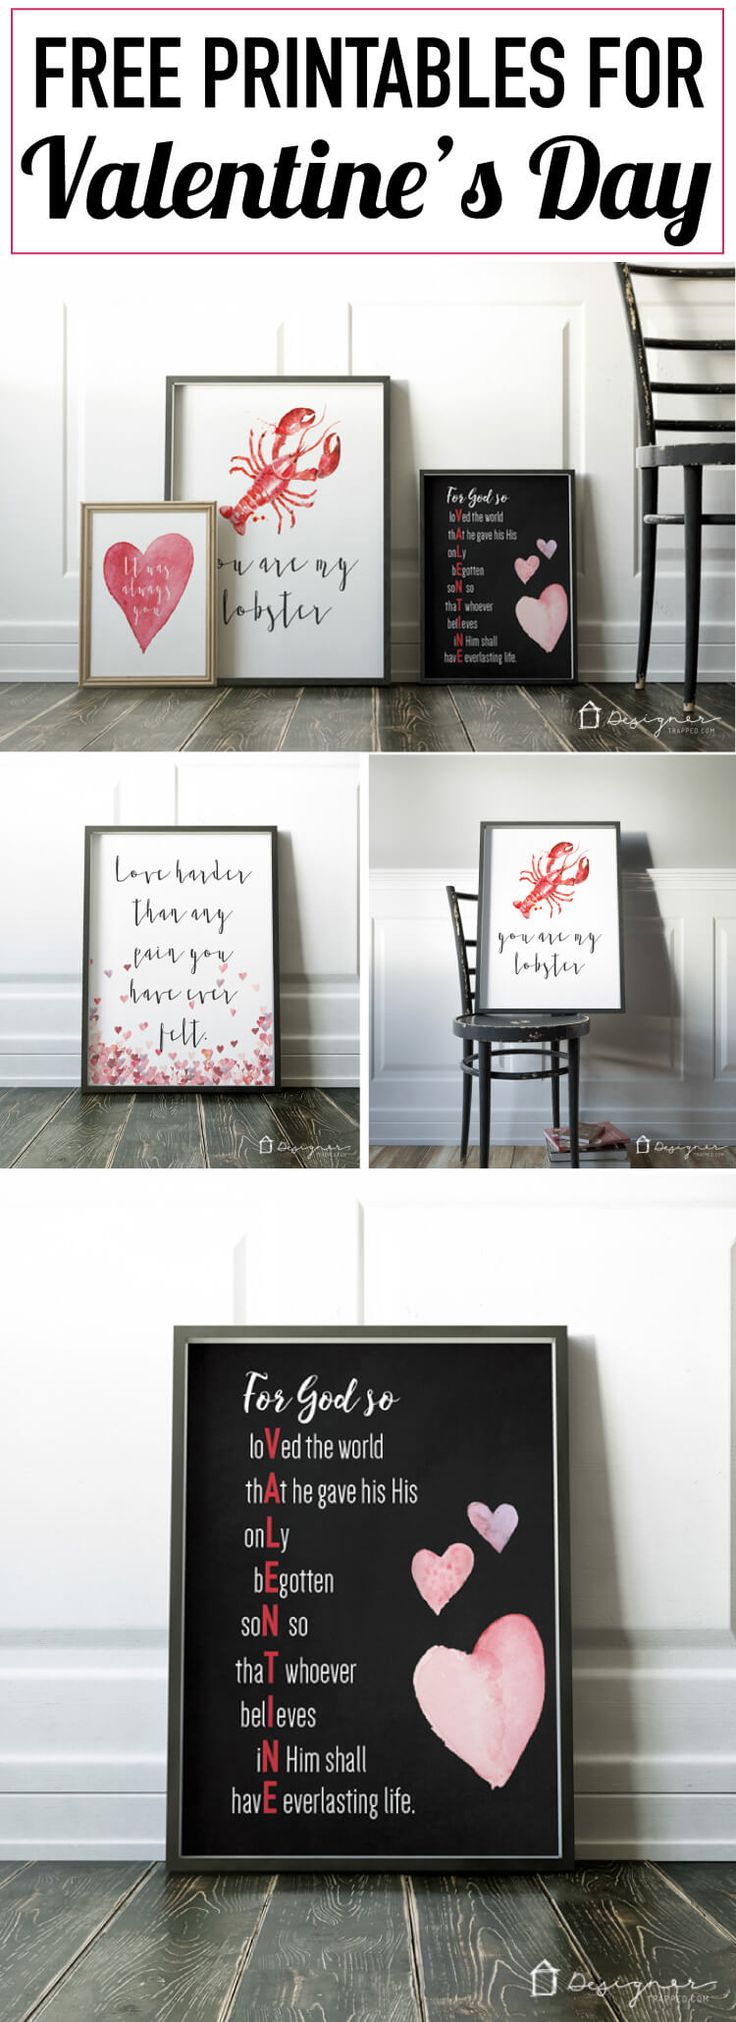 best cool decorating ideas images on pinterest